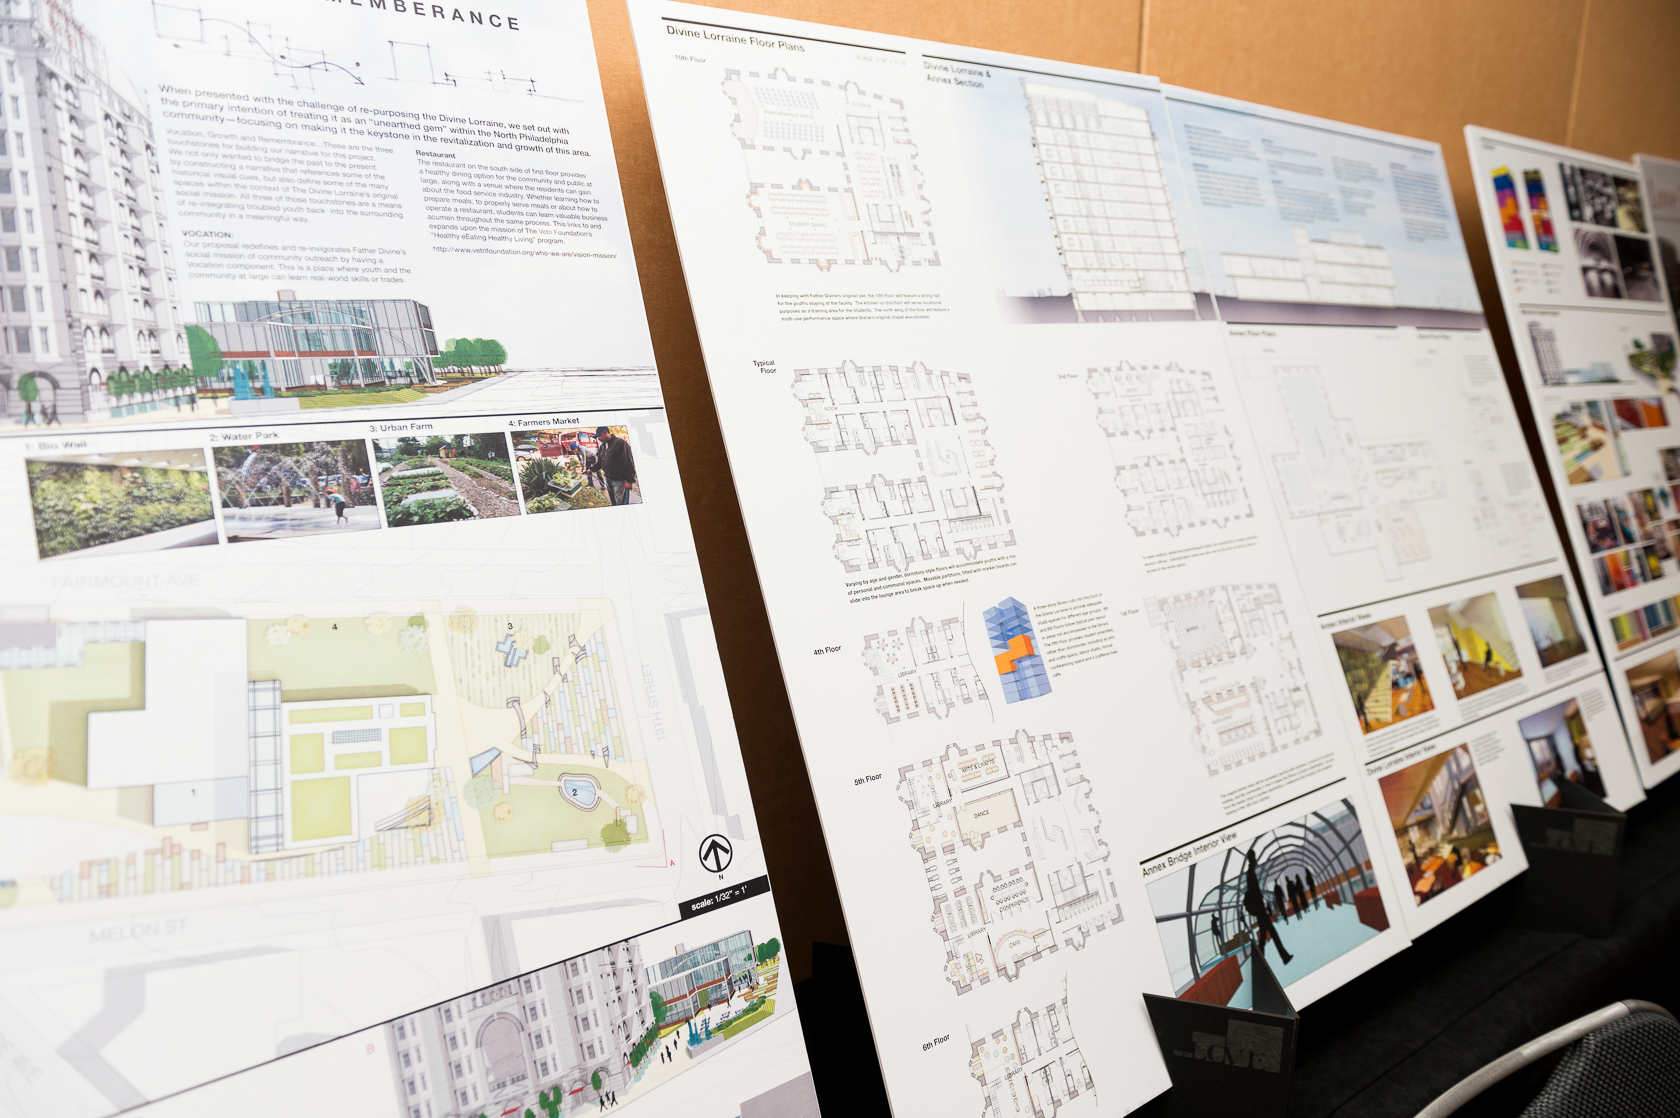 Student Design Competition Bgl National Organization Of Minority Architects Noma